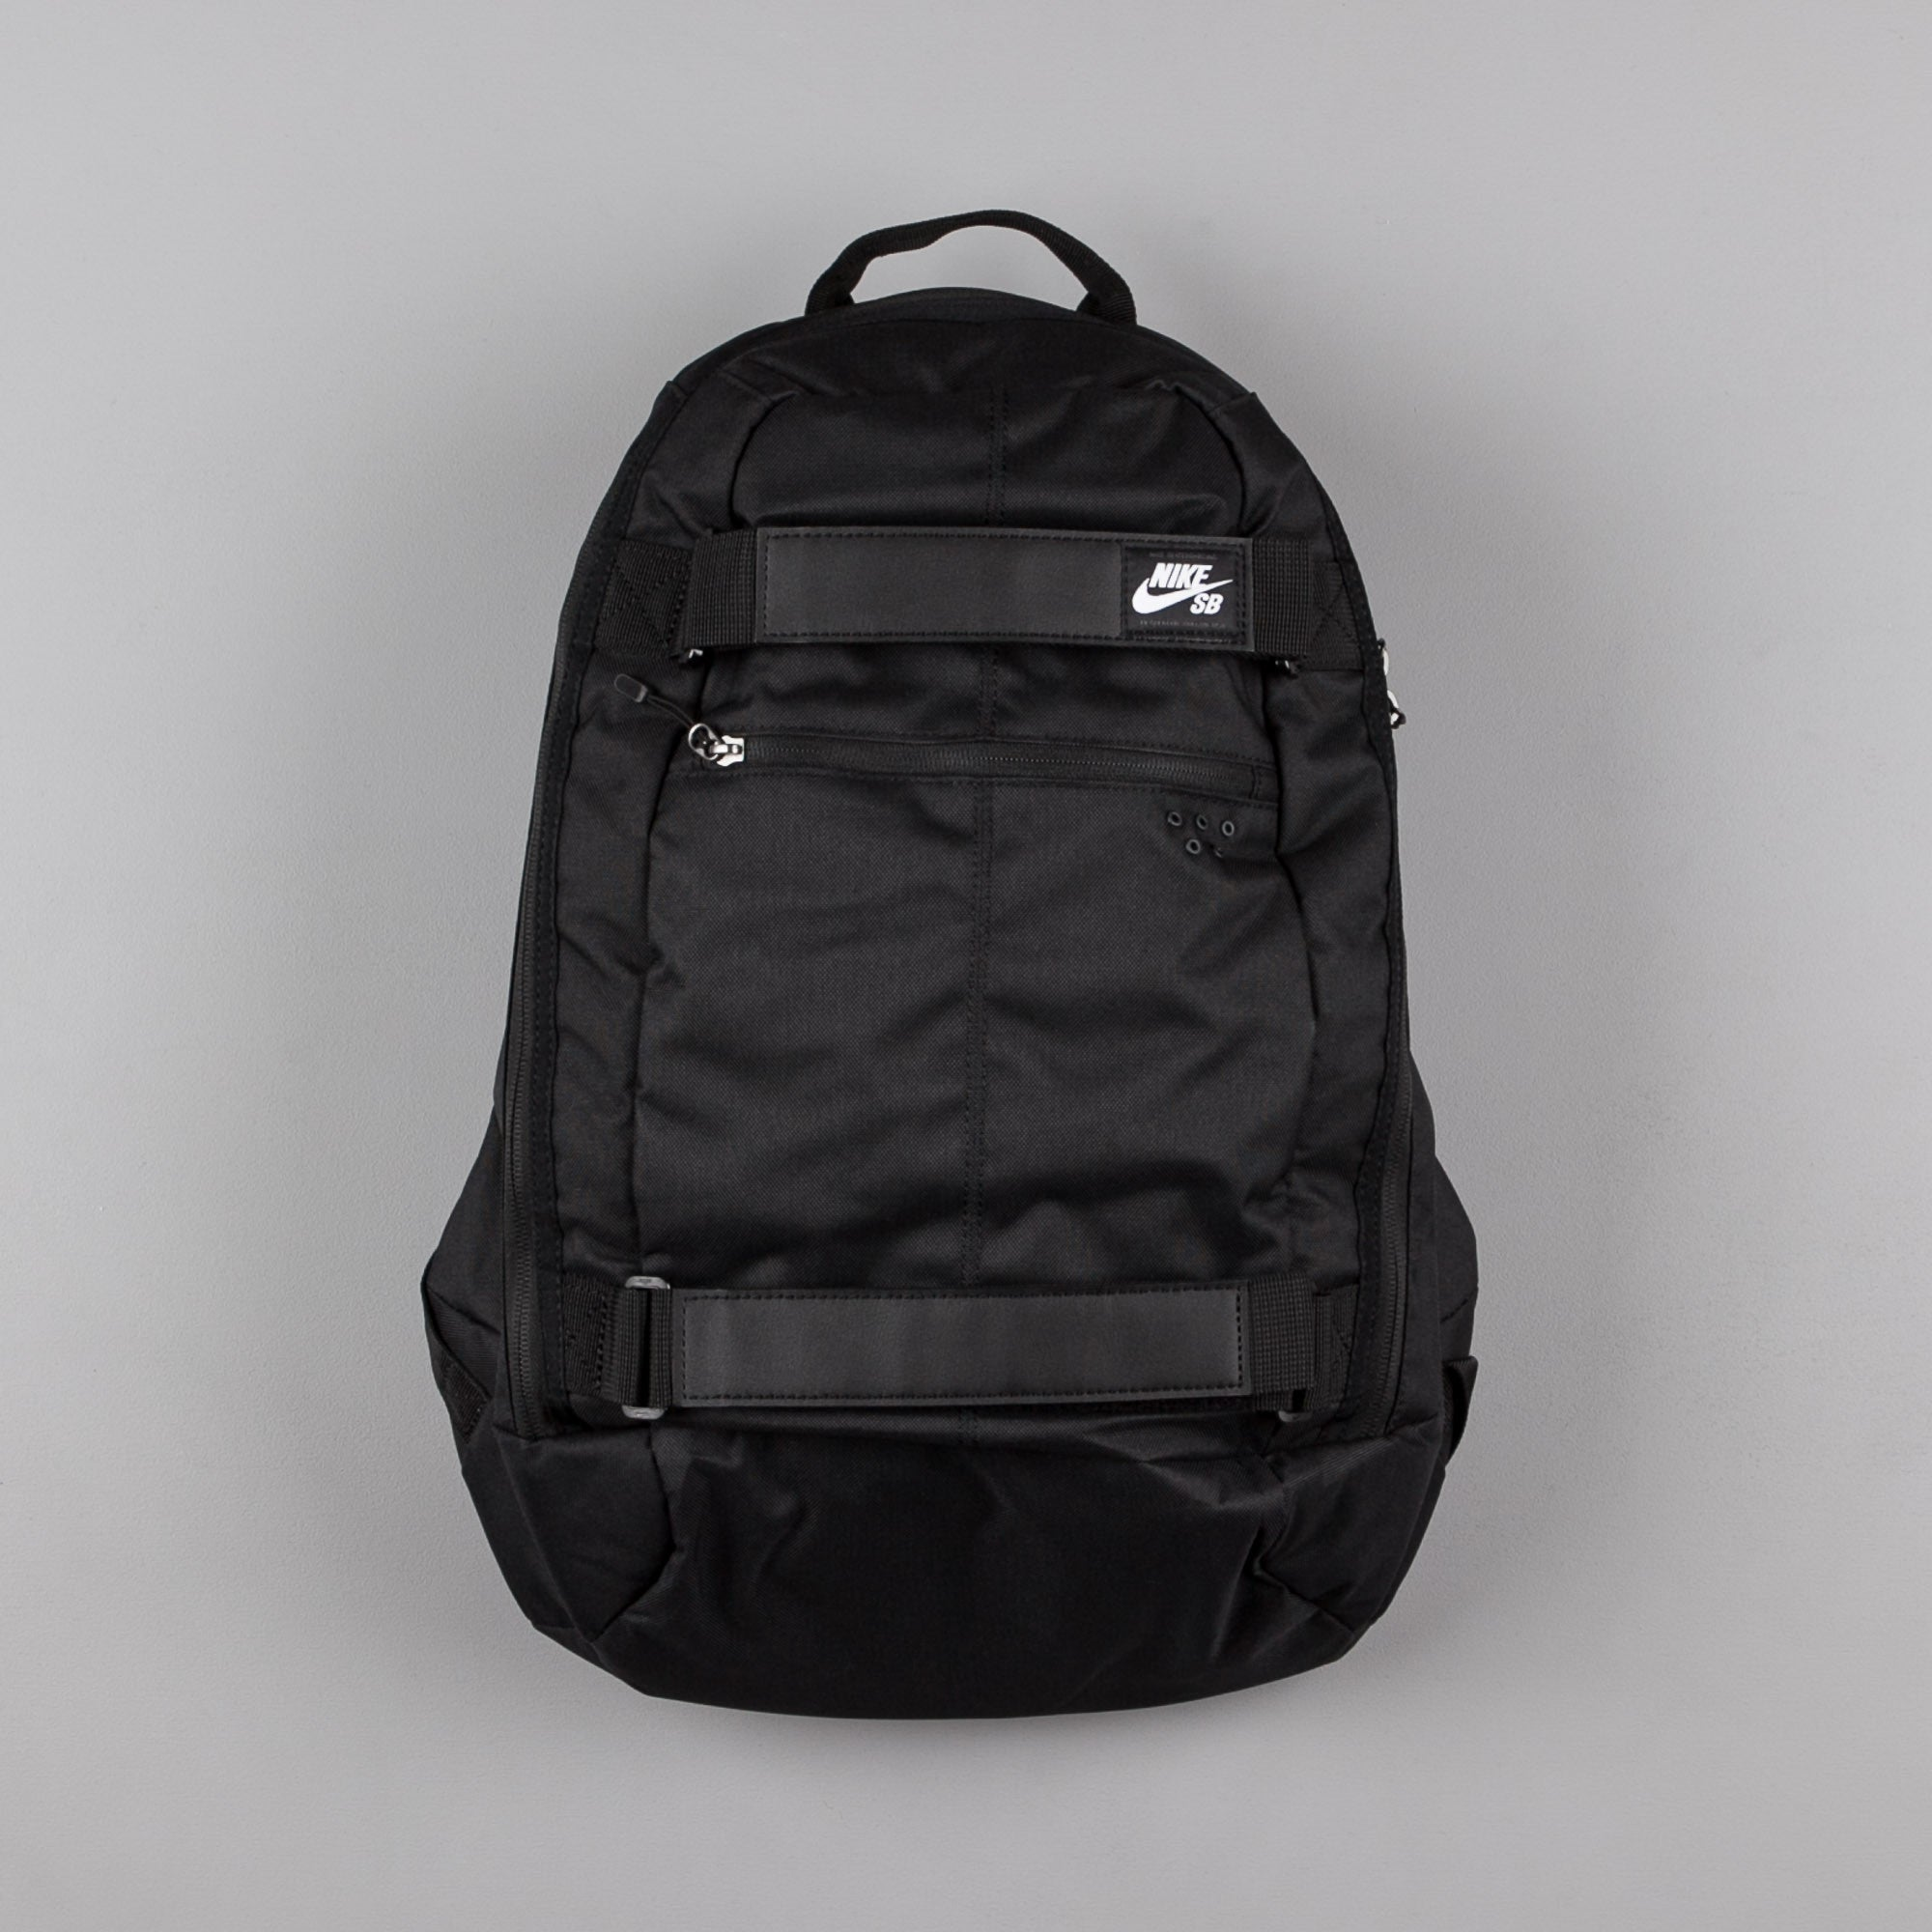 Nike SB Embarca Medium Backpack Black / White